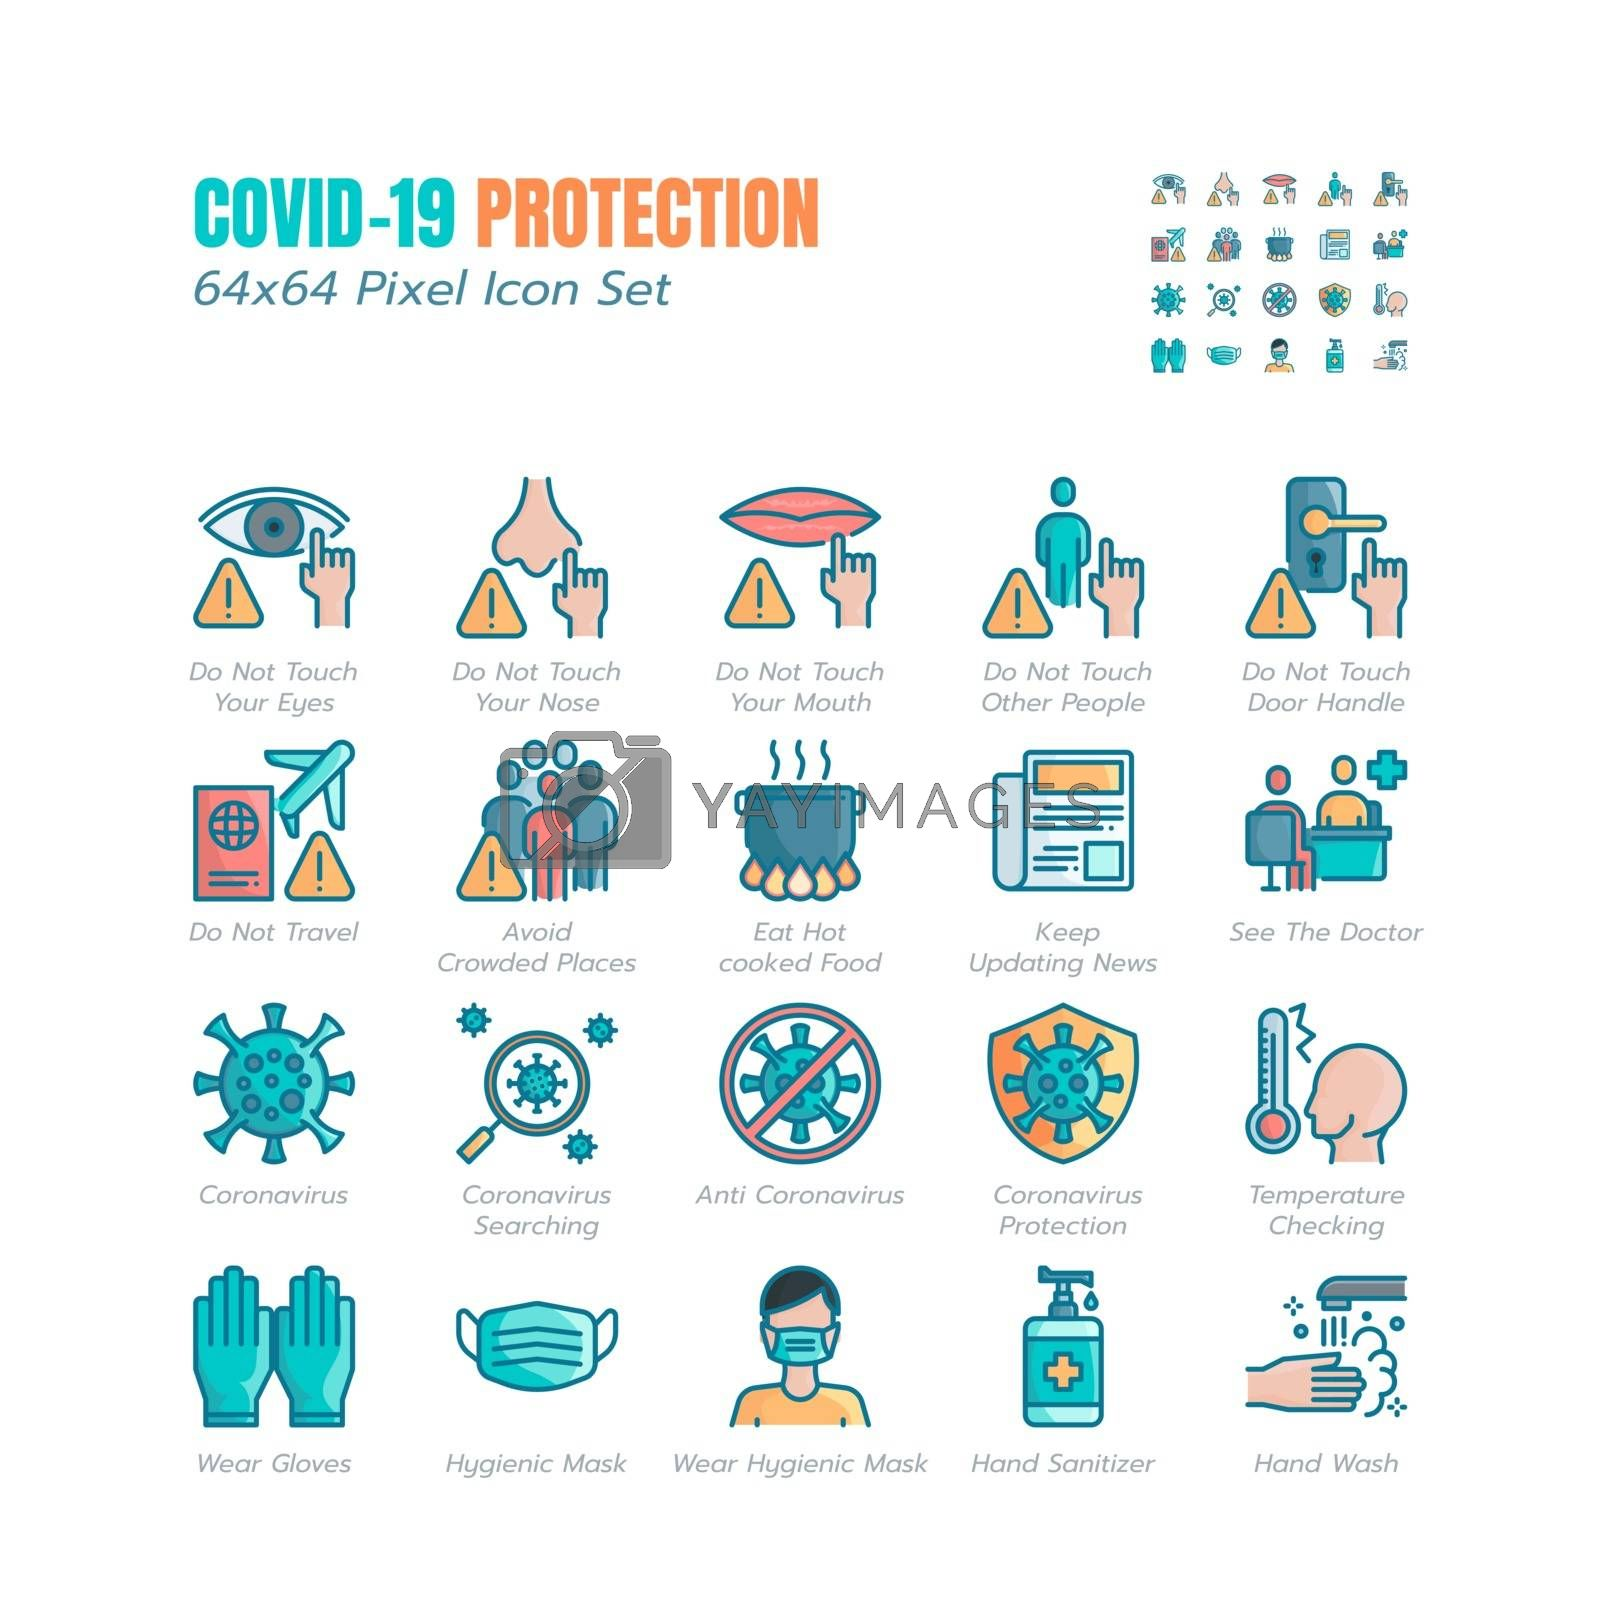 Simple Set of Covid-19 Protection Filled Icons. Icons as Guidance Protective Measures, Coronavirus Prevention, Hygienic Healthcare, Solution, Awareness, Hands Wash, Wear Face Mask etc. 64x64 Pixel